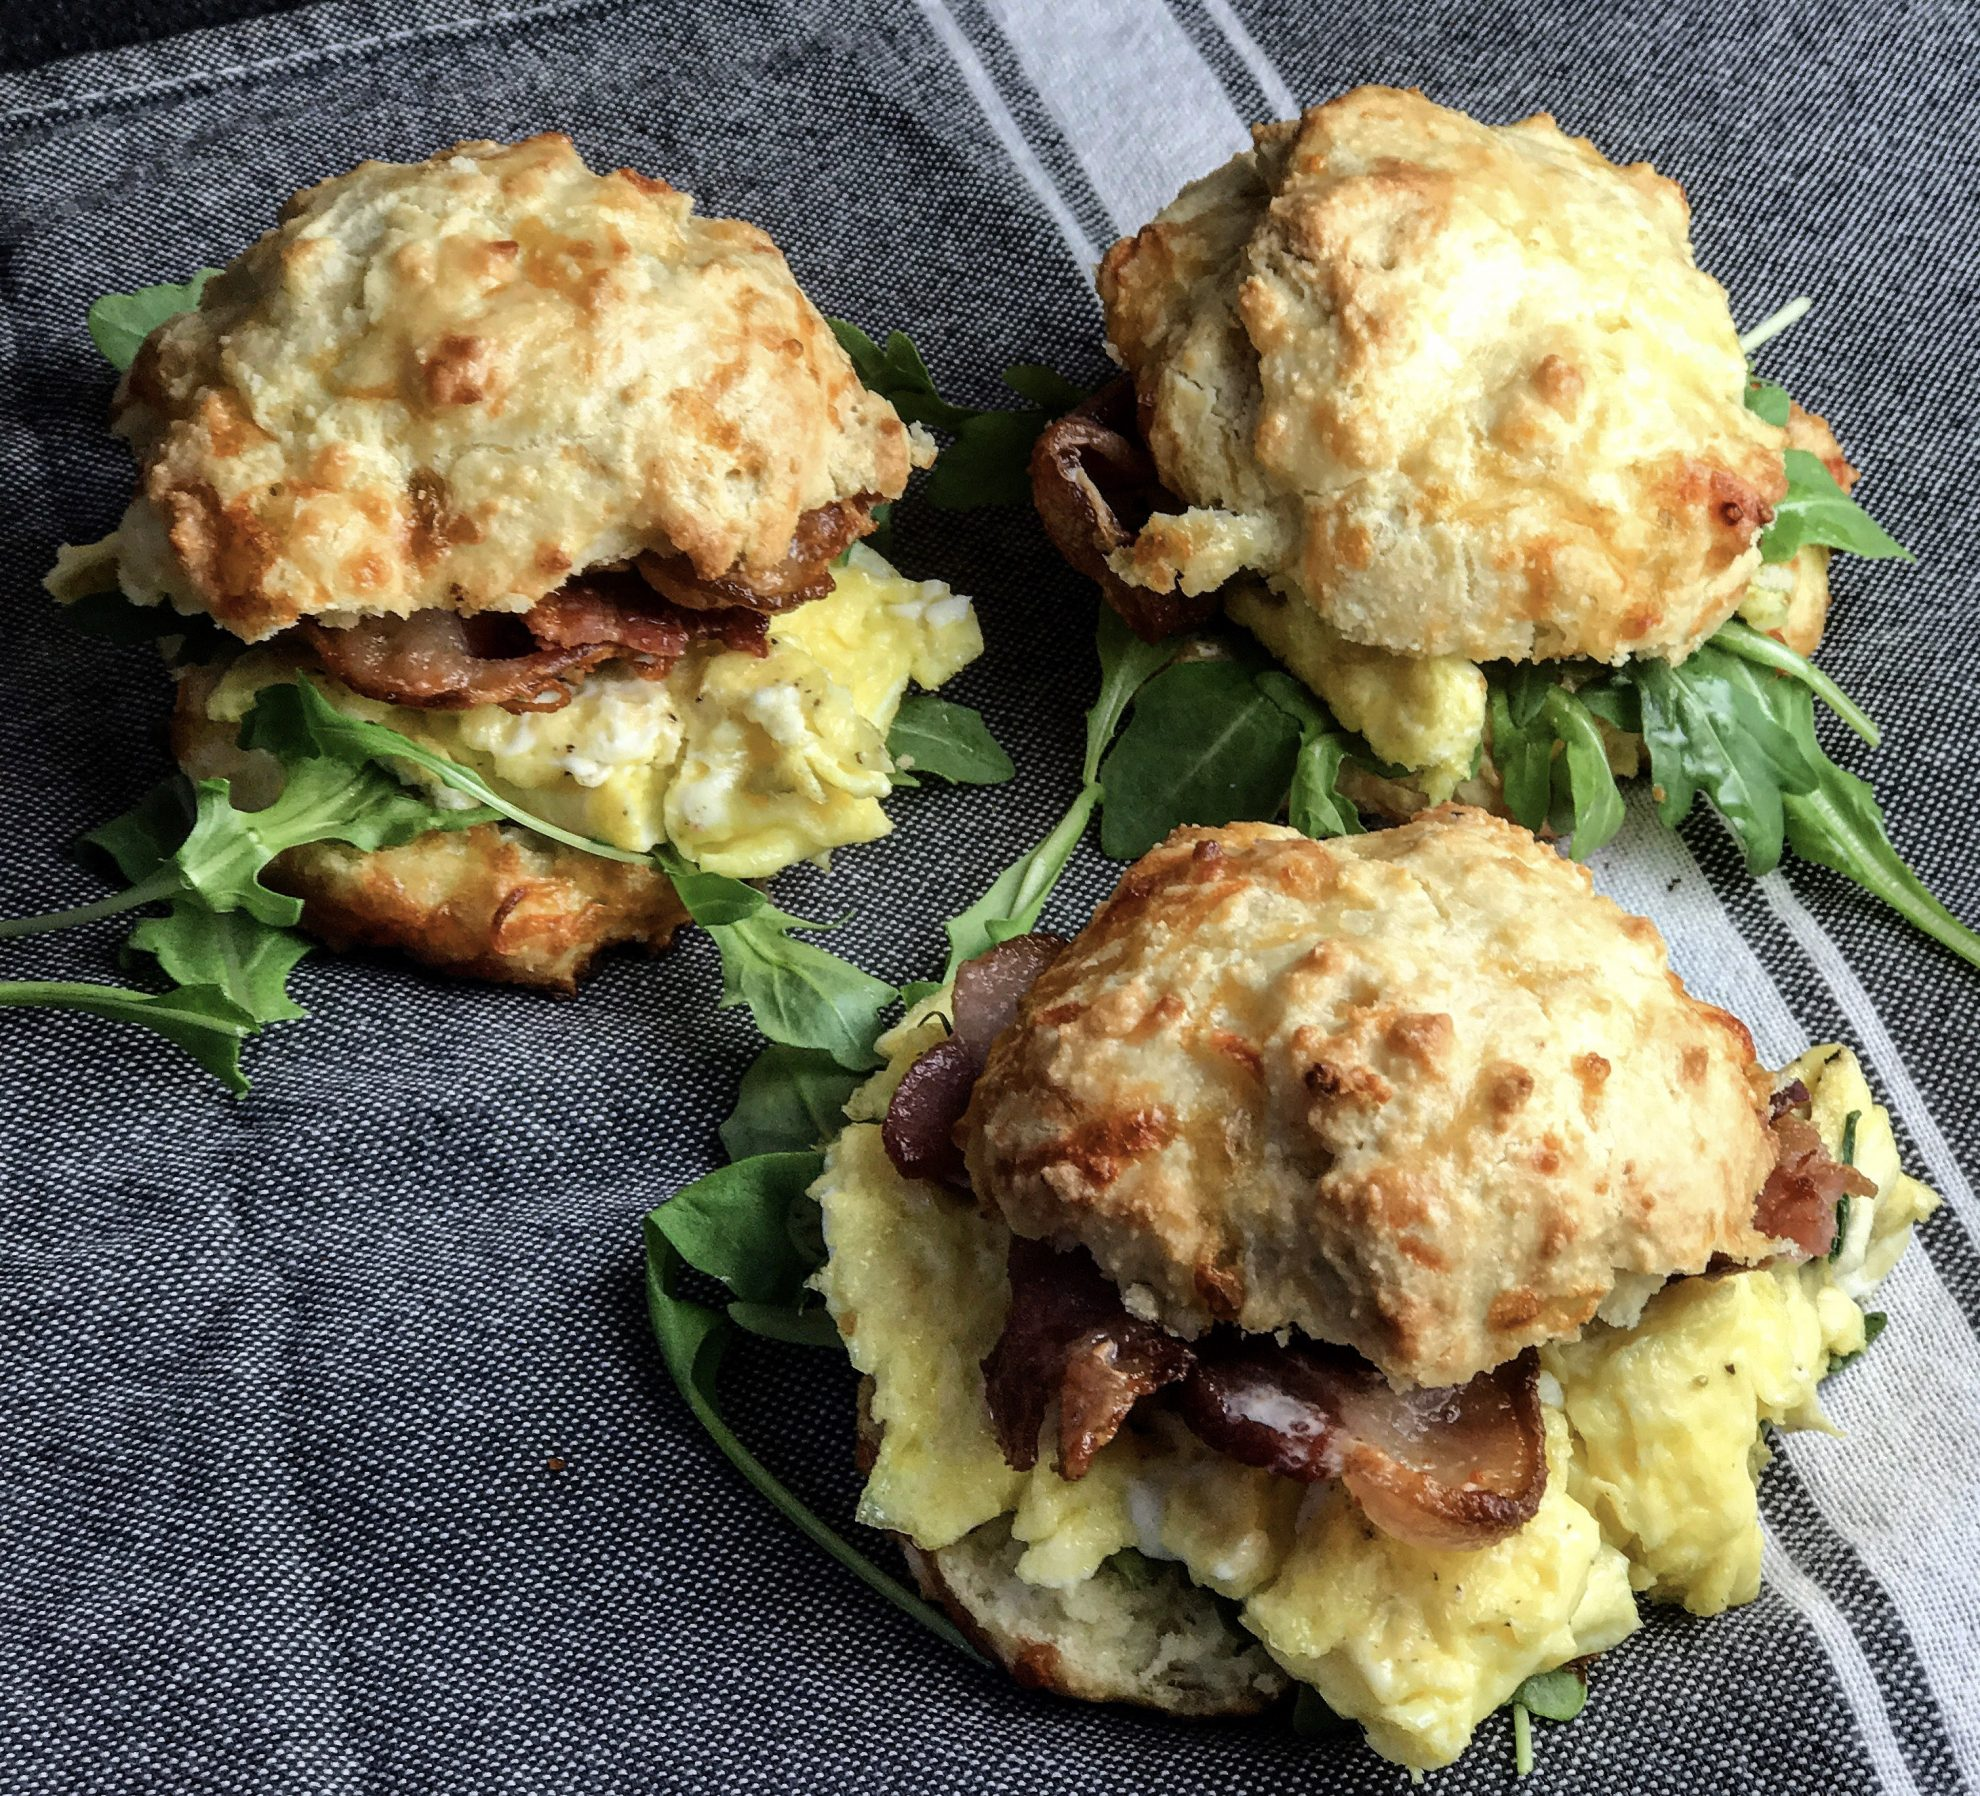 Keto Biscuit Breakfast Sandwich recipe - perfect for a keto friendly brunch! | mincerepublic.com